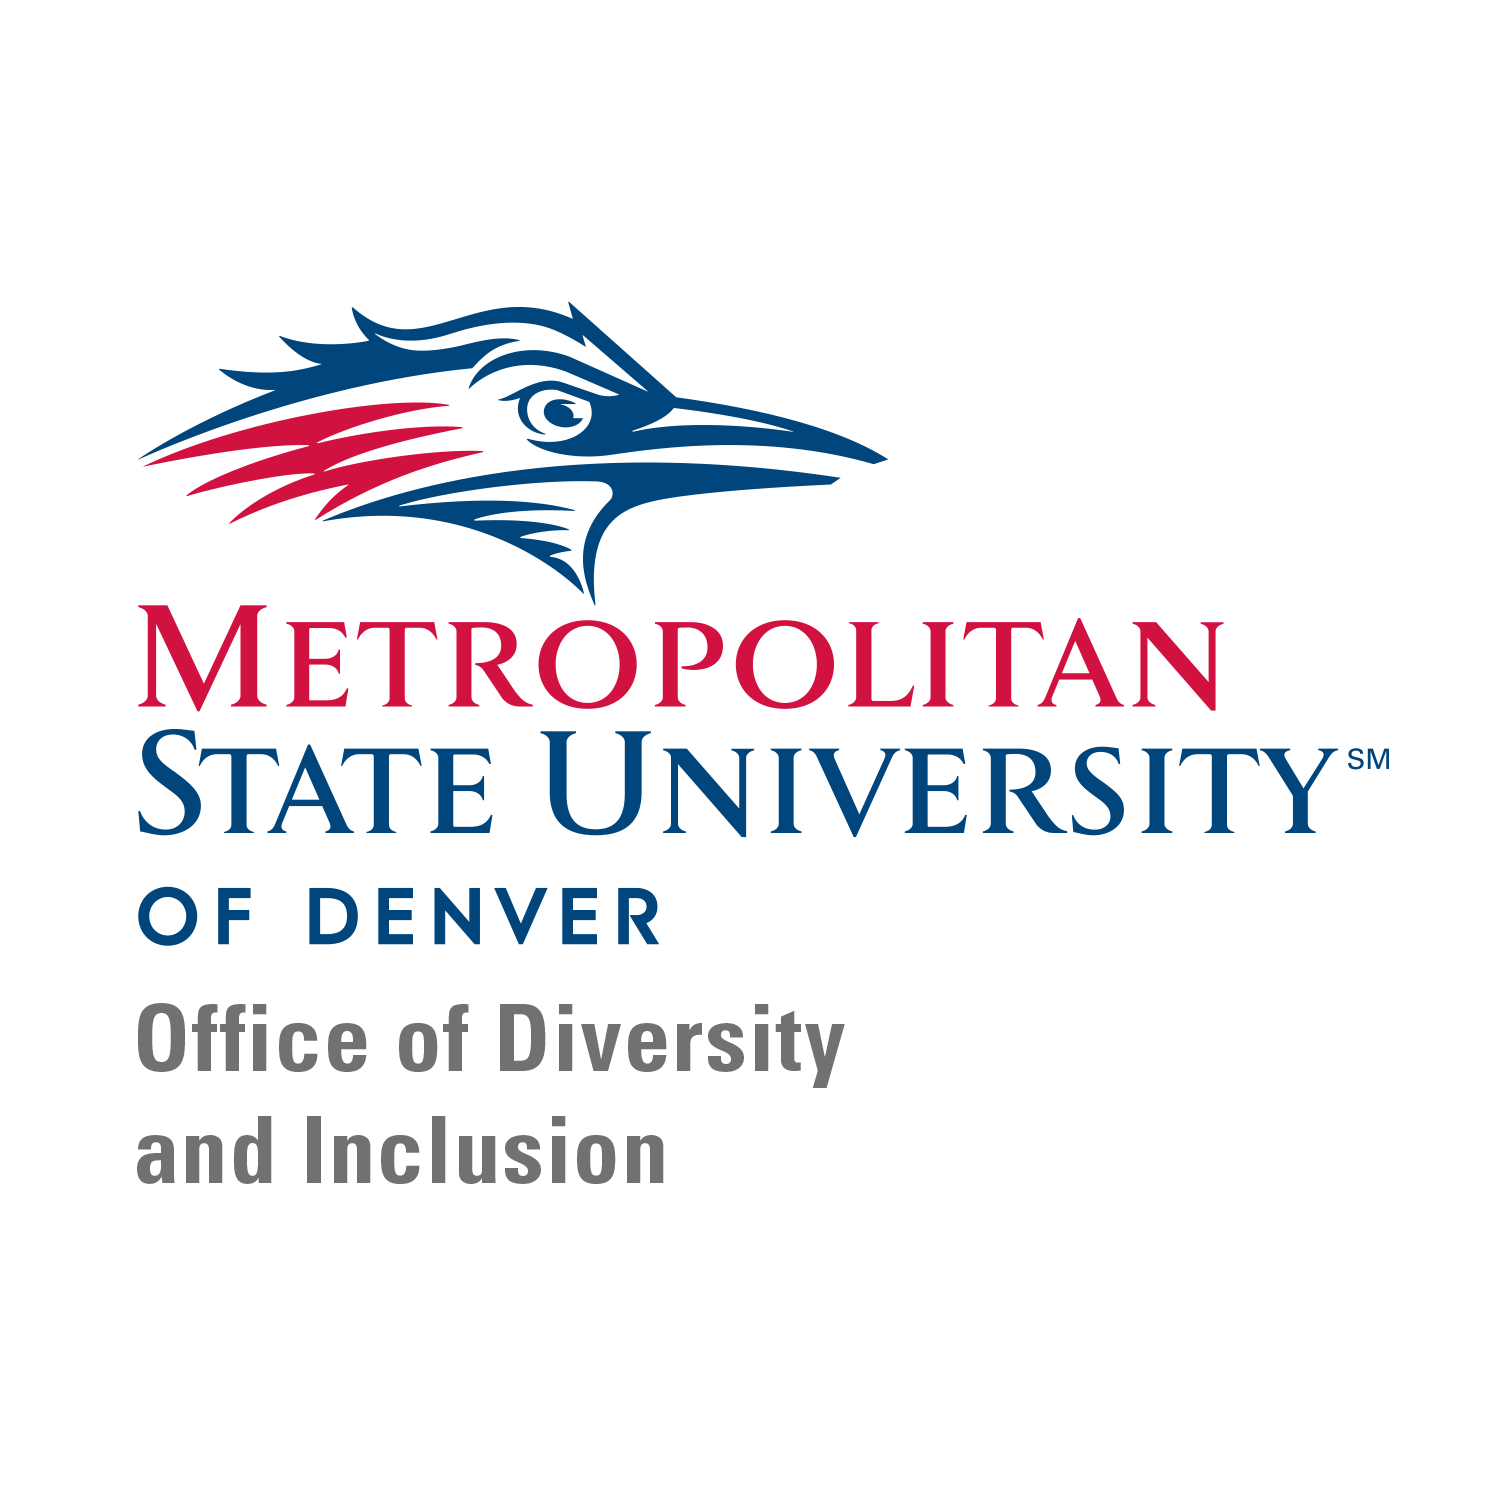 MSUDenver_Formal_OfficeOfDiversityandInclusion_3CPos_BlueRed_WhBkgd_FormatA_PAN.png